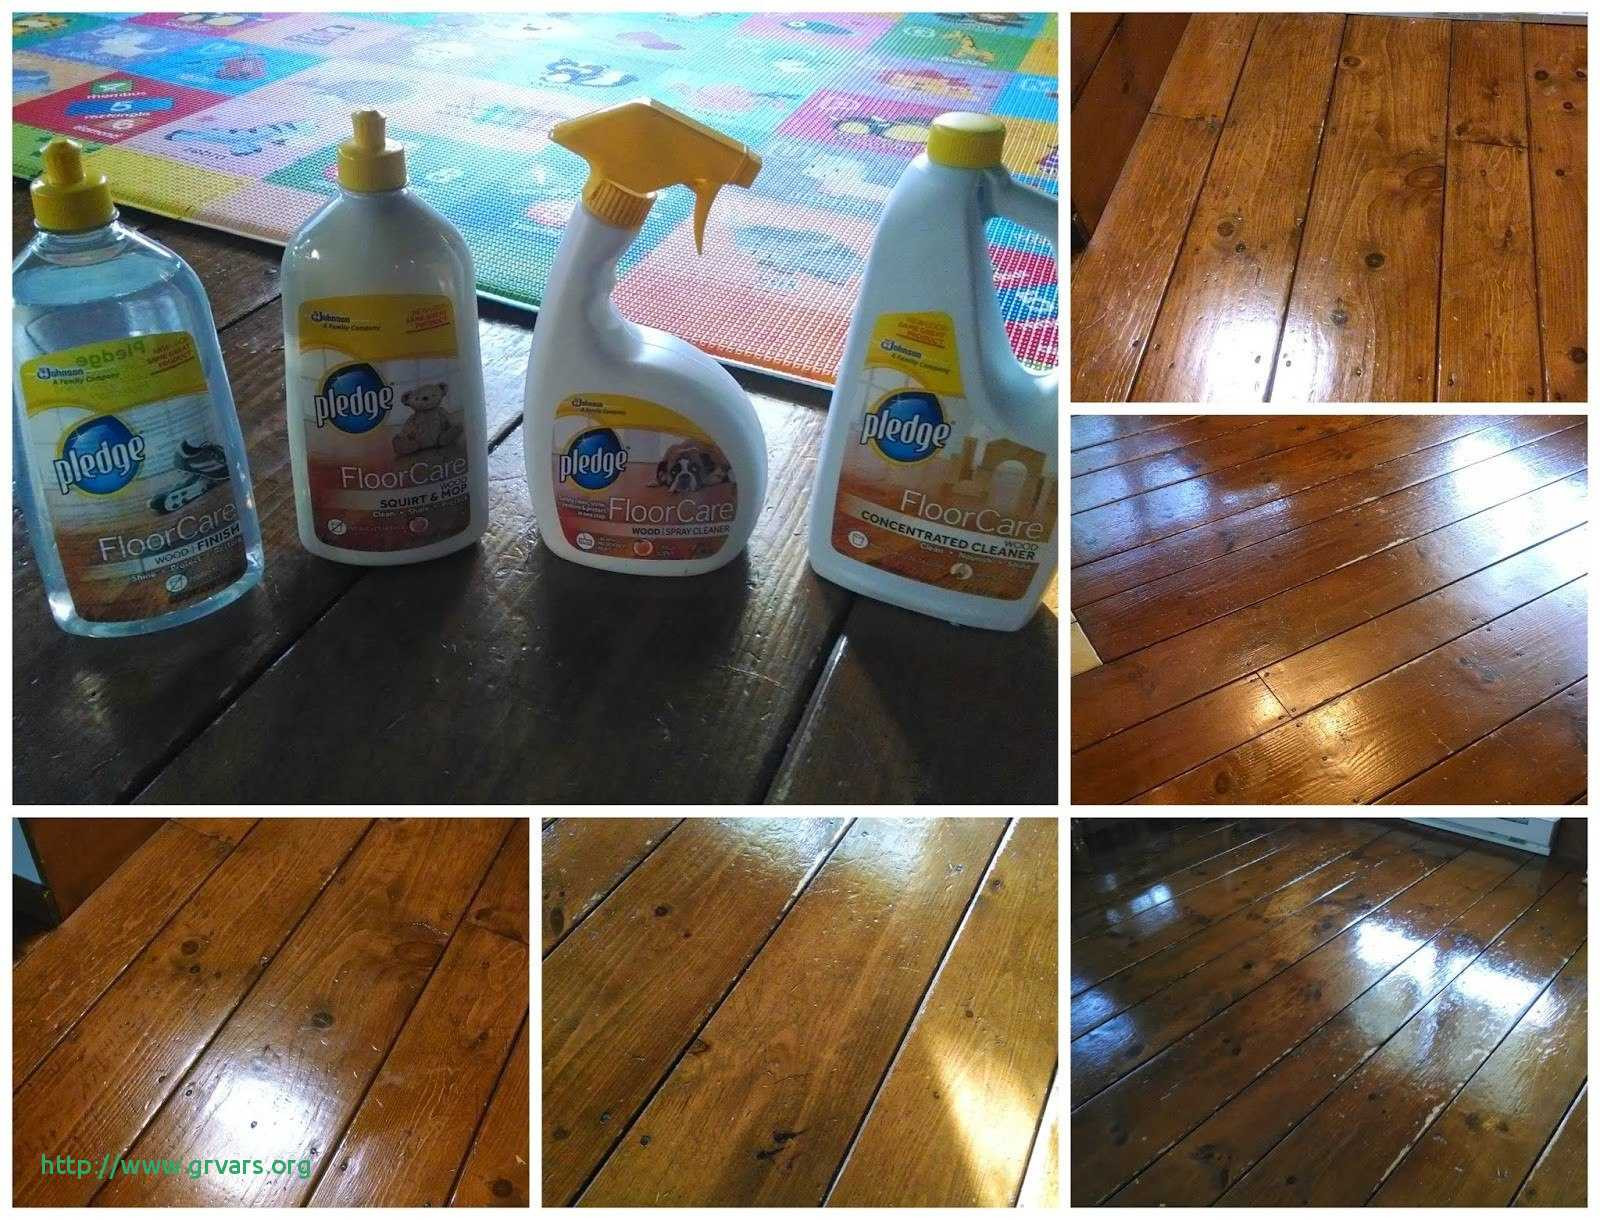 how do i clean hardwood floors with vinegar of using vinegar to clean hardwood floors a‰lagant clean hardwood floors intended for using vinegar to clean hardwood floors a‰lagant clean hardwood floors vinegar podemosleganes